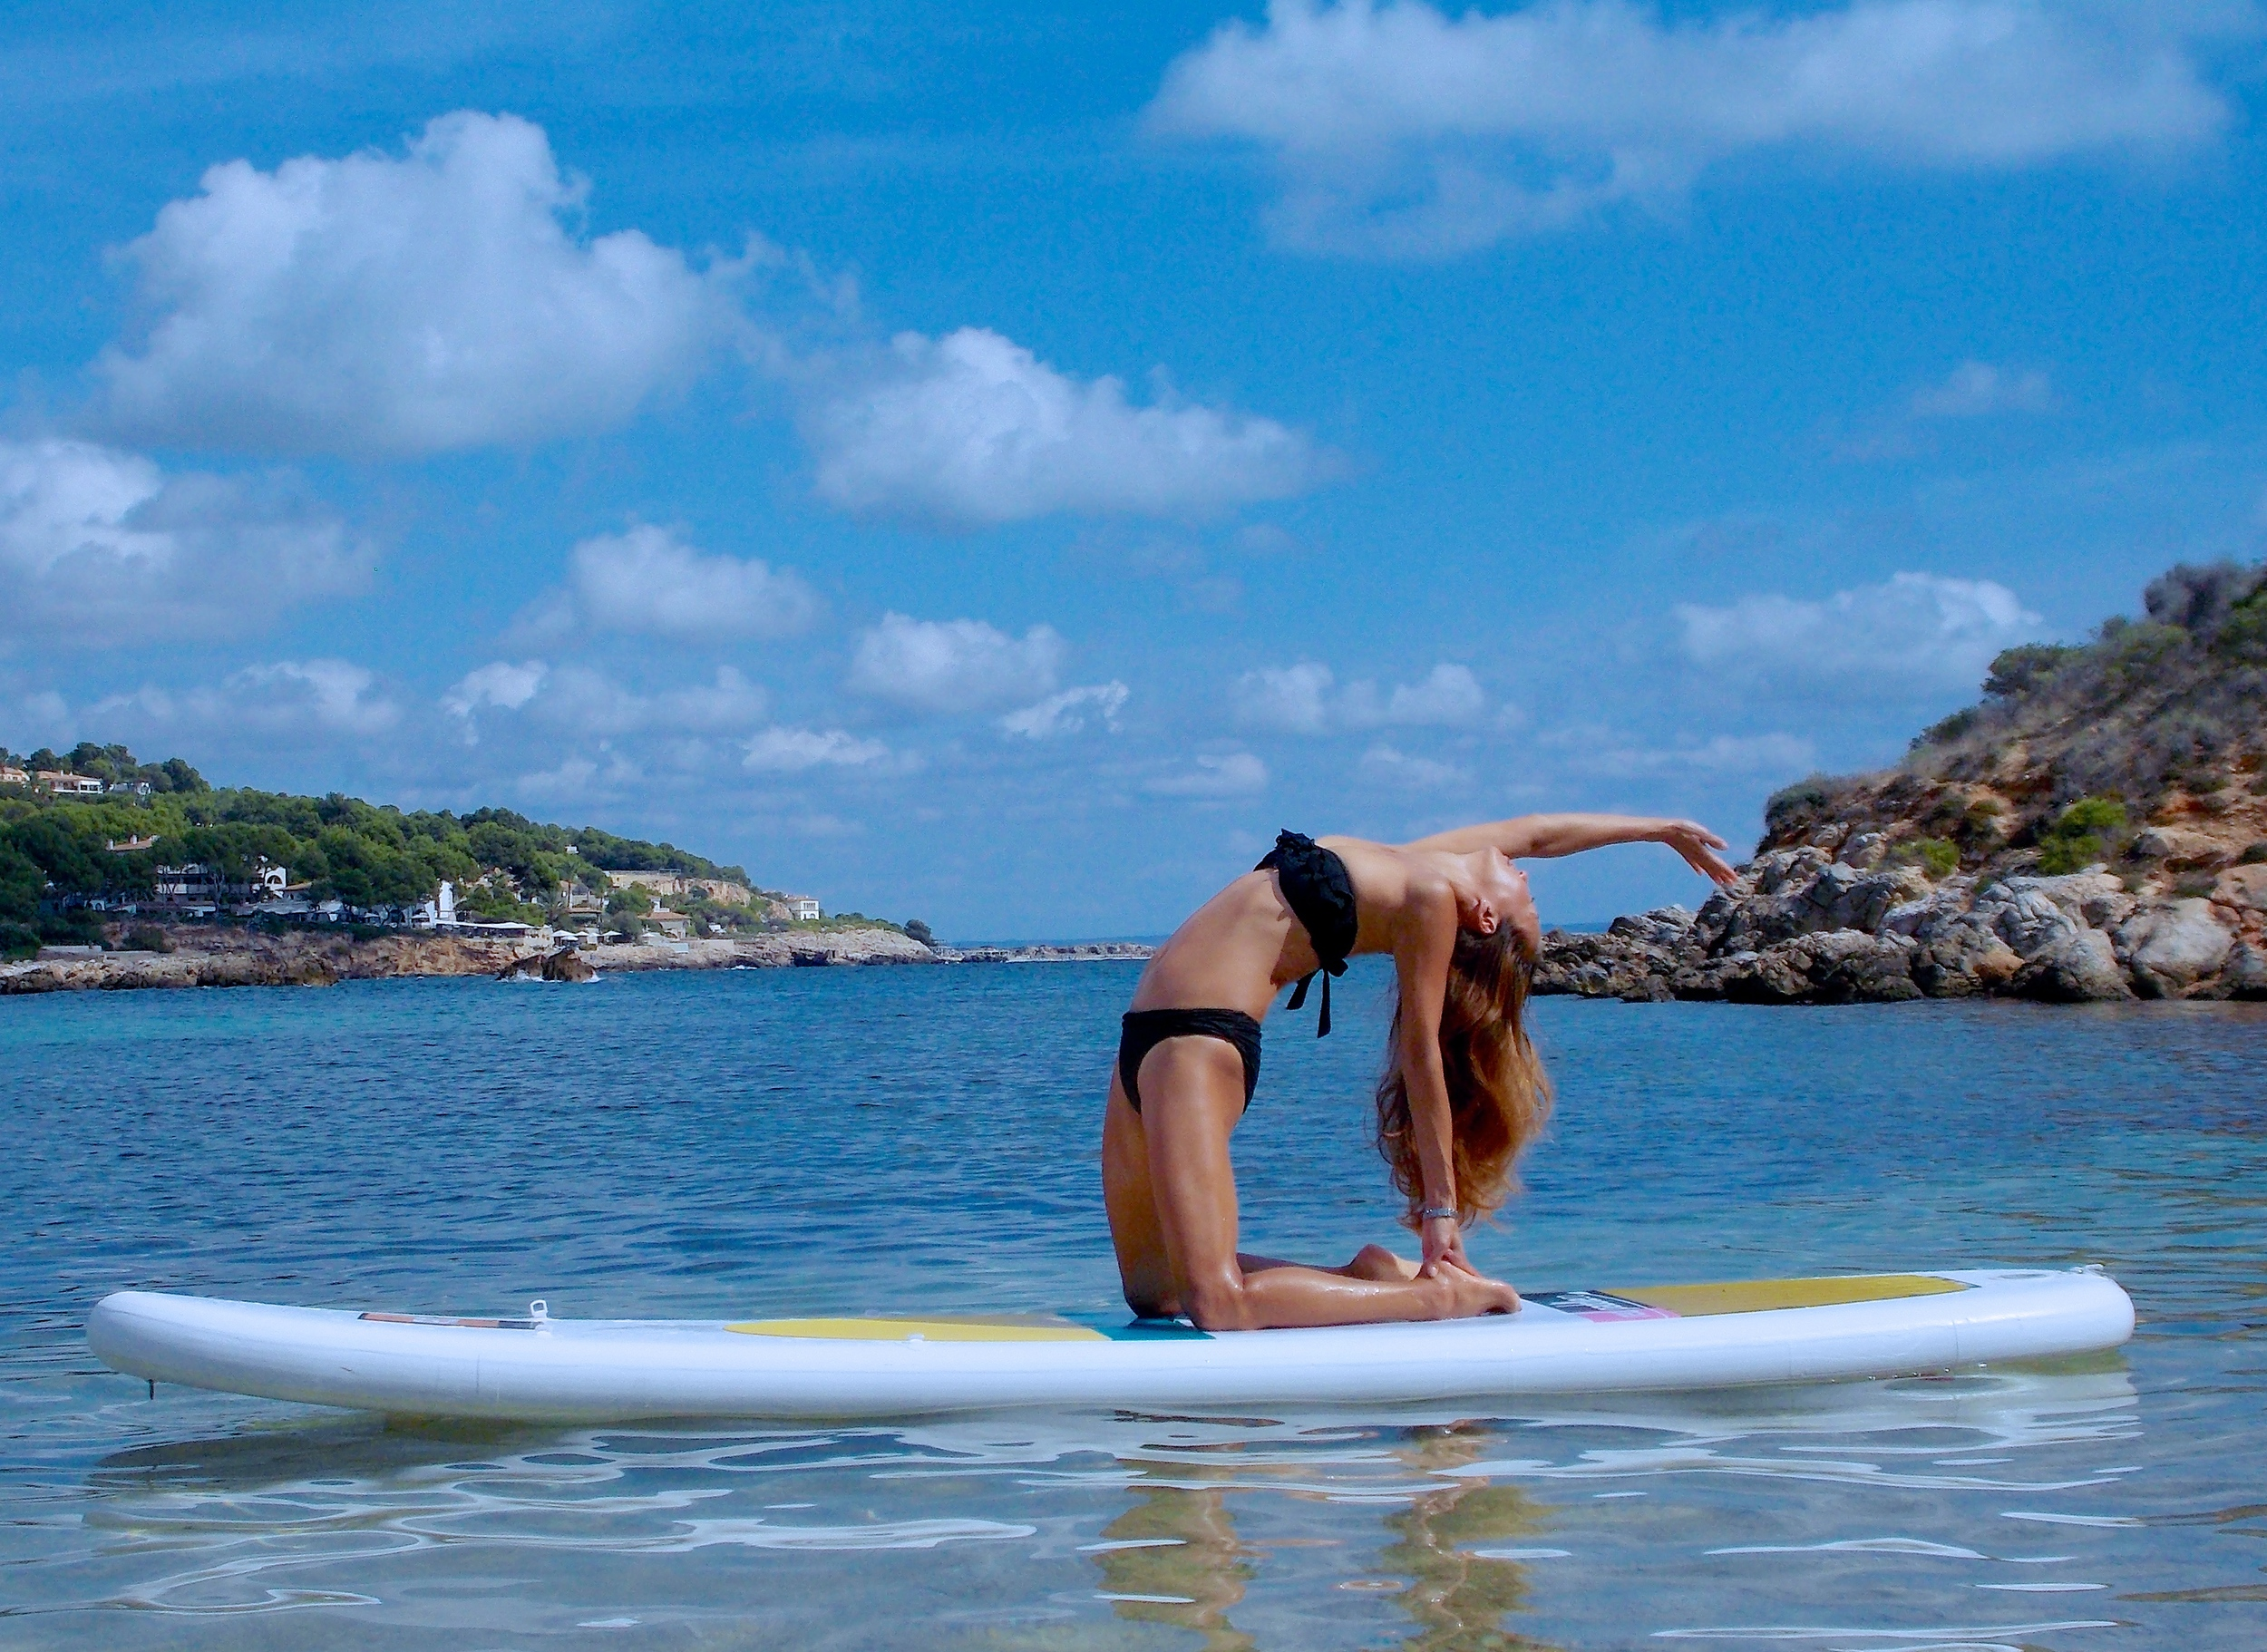 Do a little yoga, or stand-up-paddle, or go for a run and swim in the sea . . . move your body the way you want. It's your retreat!